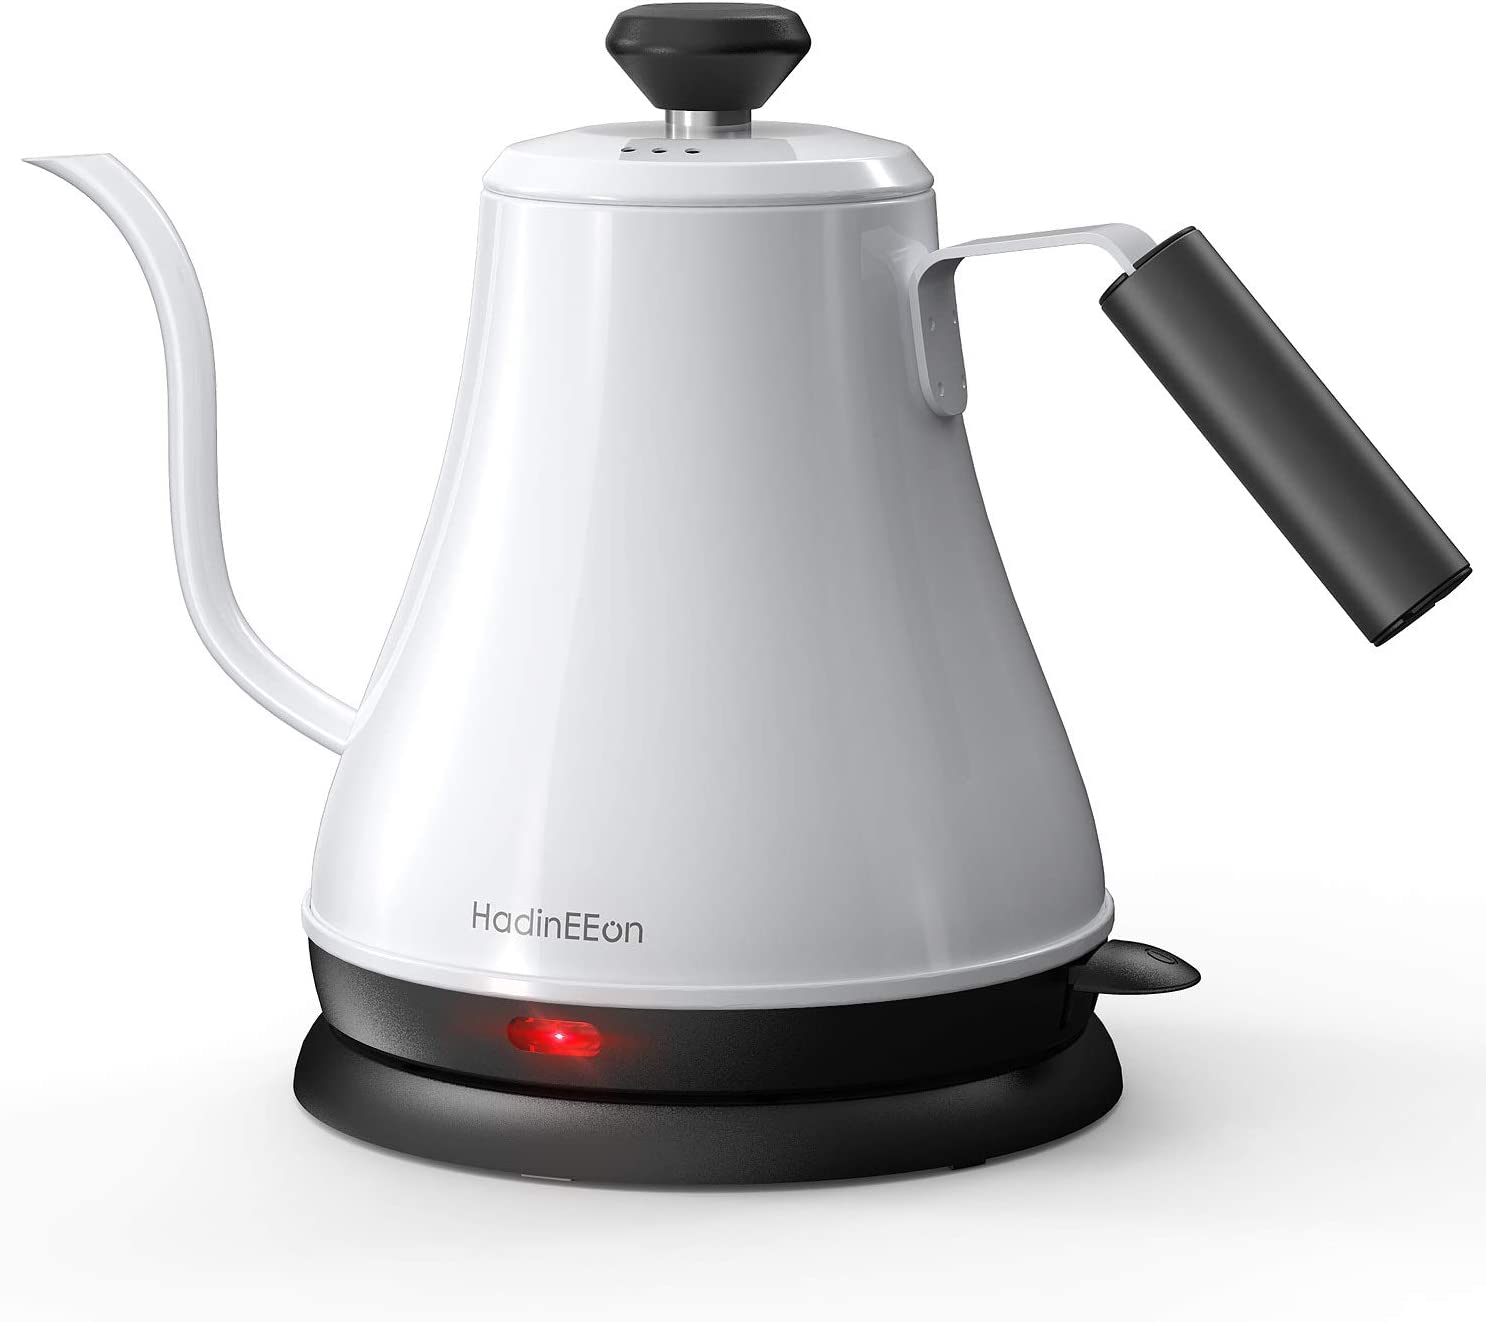 HadinEEon Electric Gooseneck Kettle 100% Stainless Steel BPA-Free Tea Kettle, Electric Pour Over Coffee Kettle Pot Portable Cordless Teapot with Auto Shut-Off Protection, 1000 Watt, 0.8L- Glossy White: Kitchen & Dining